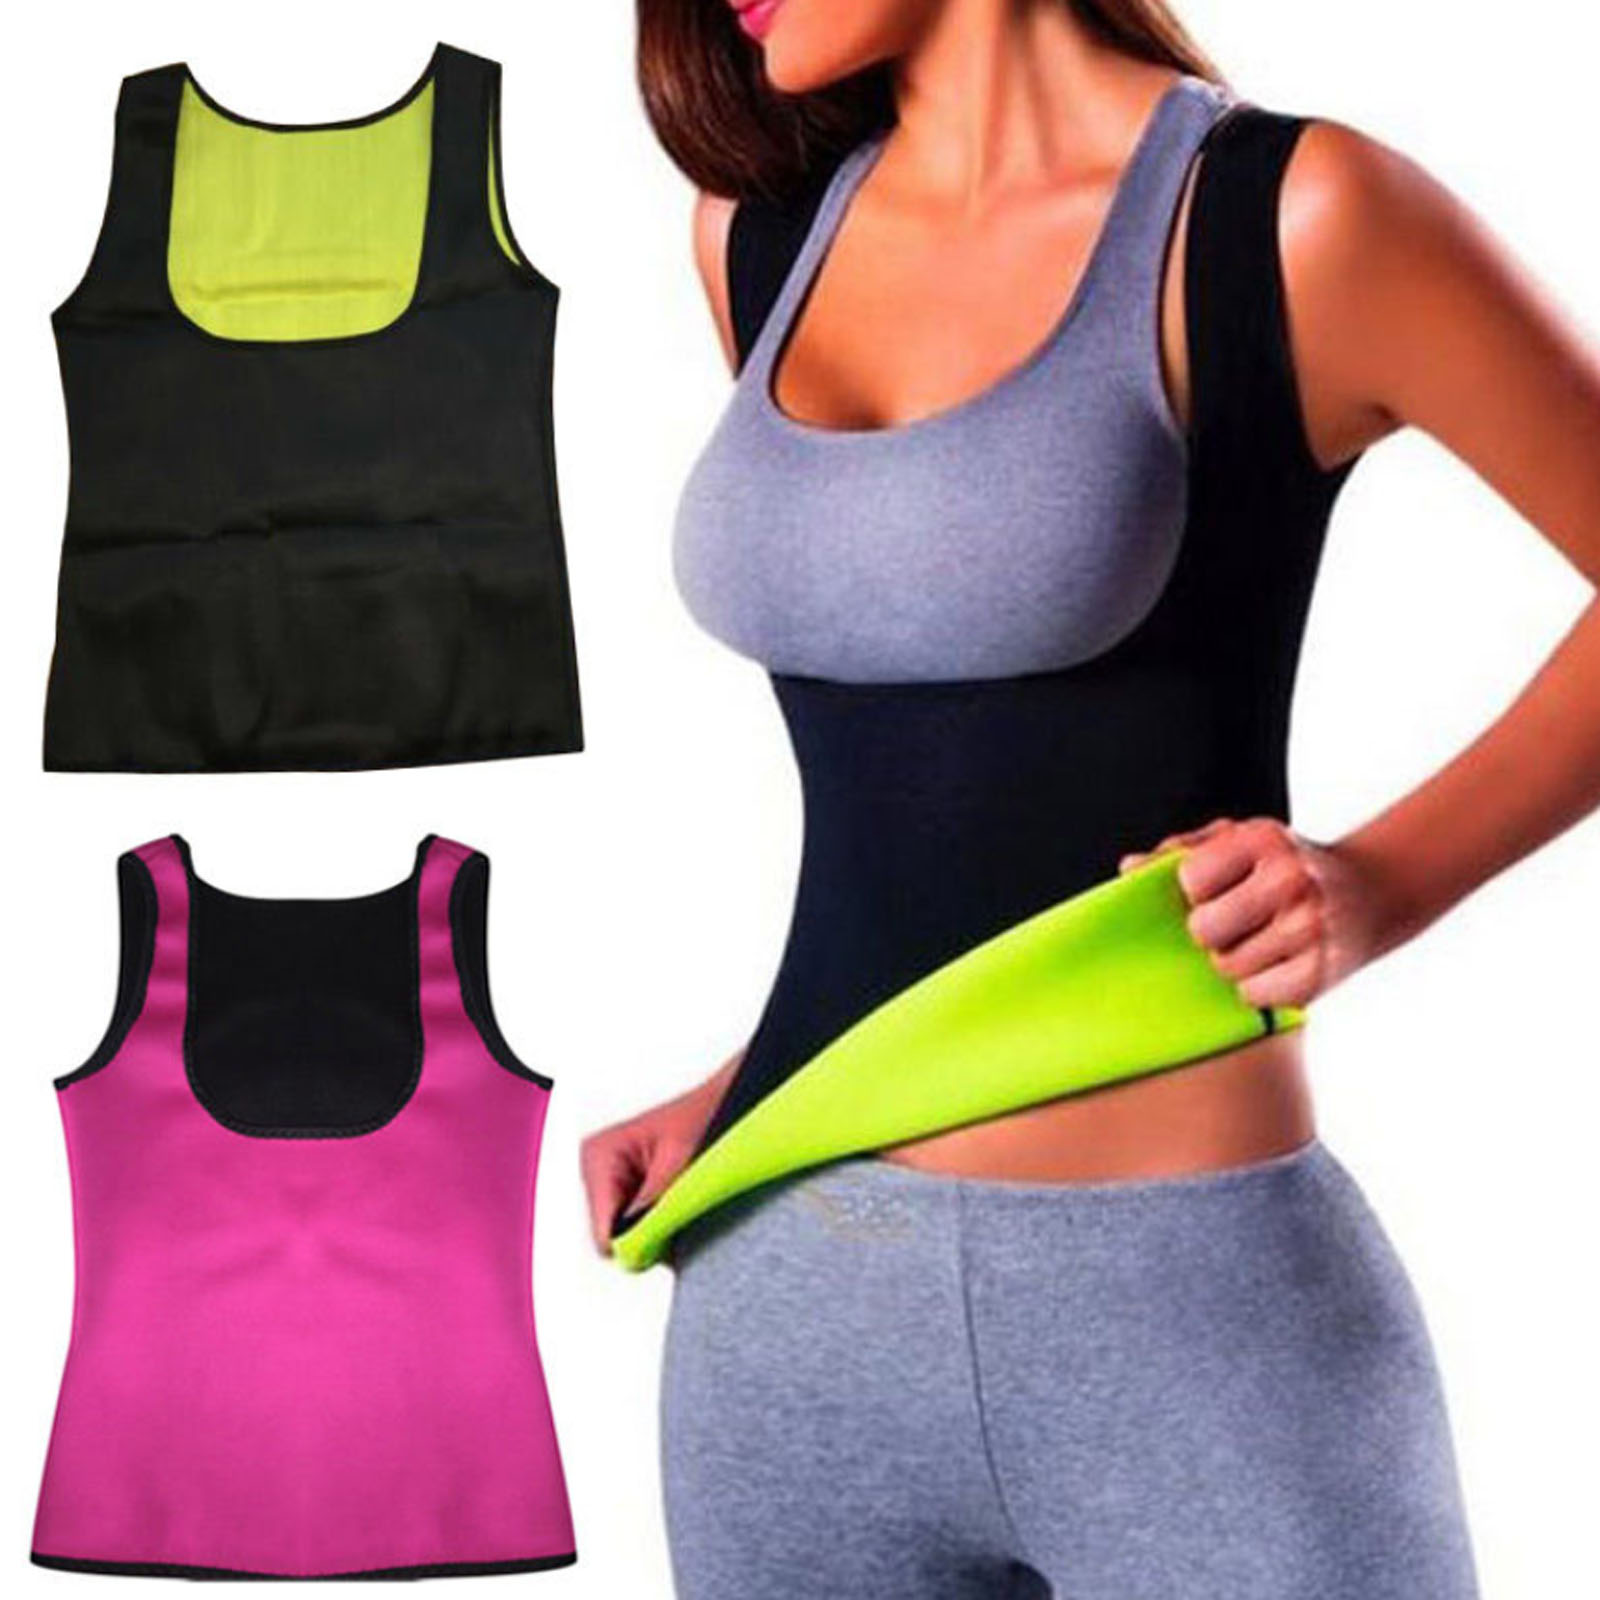 127b76d053e Details about Hot Sweat Sauna Body Shaper Women Slimming Vest Thermo  Spandex Waist Trainer US